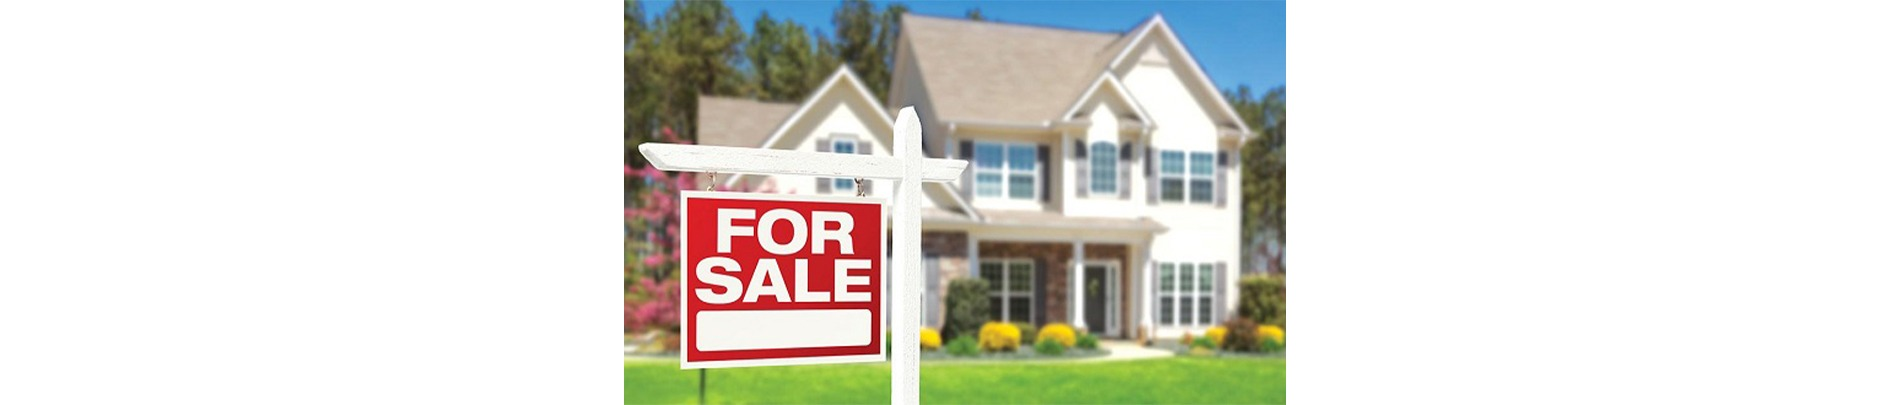 Getting a Property Ready to Sell